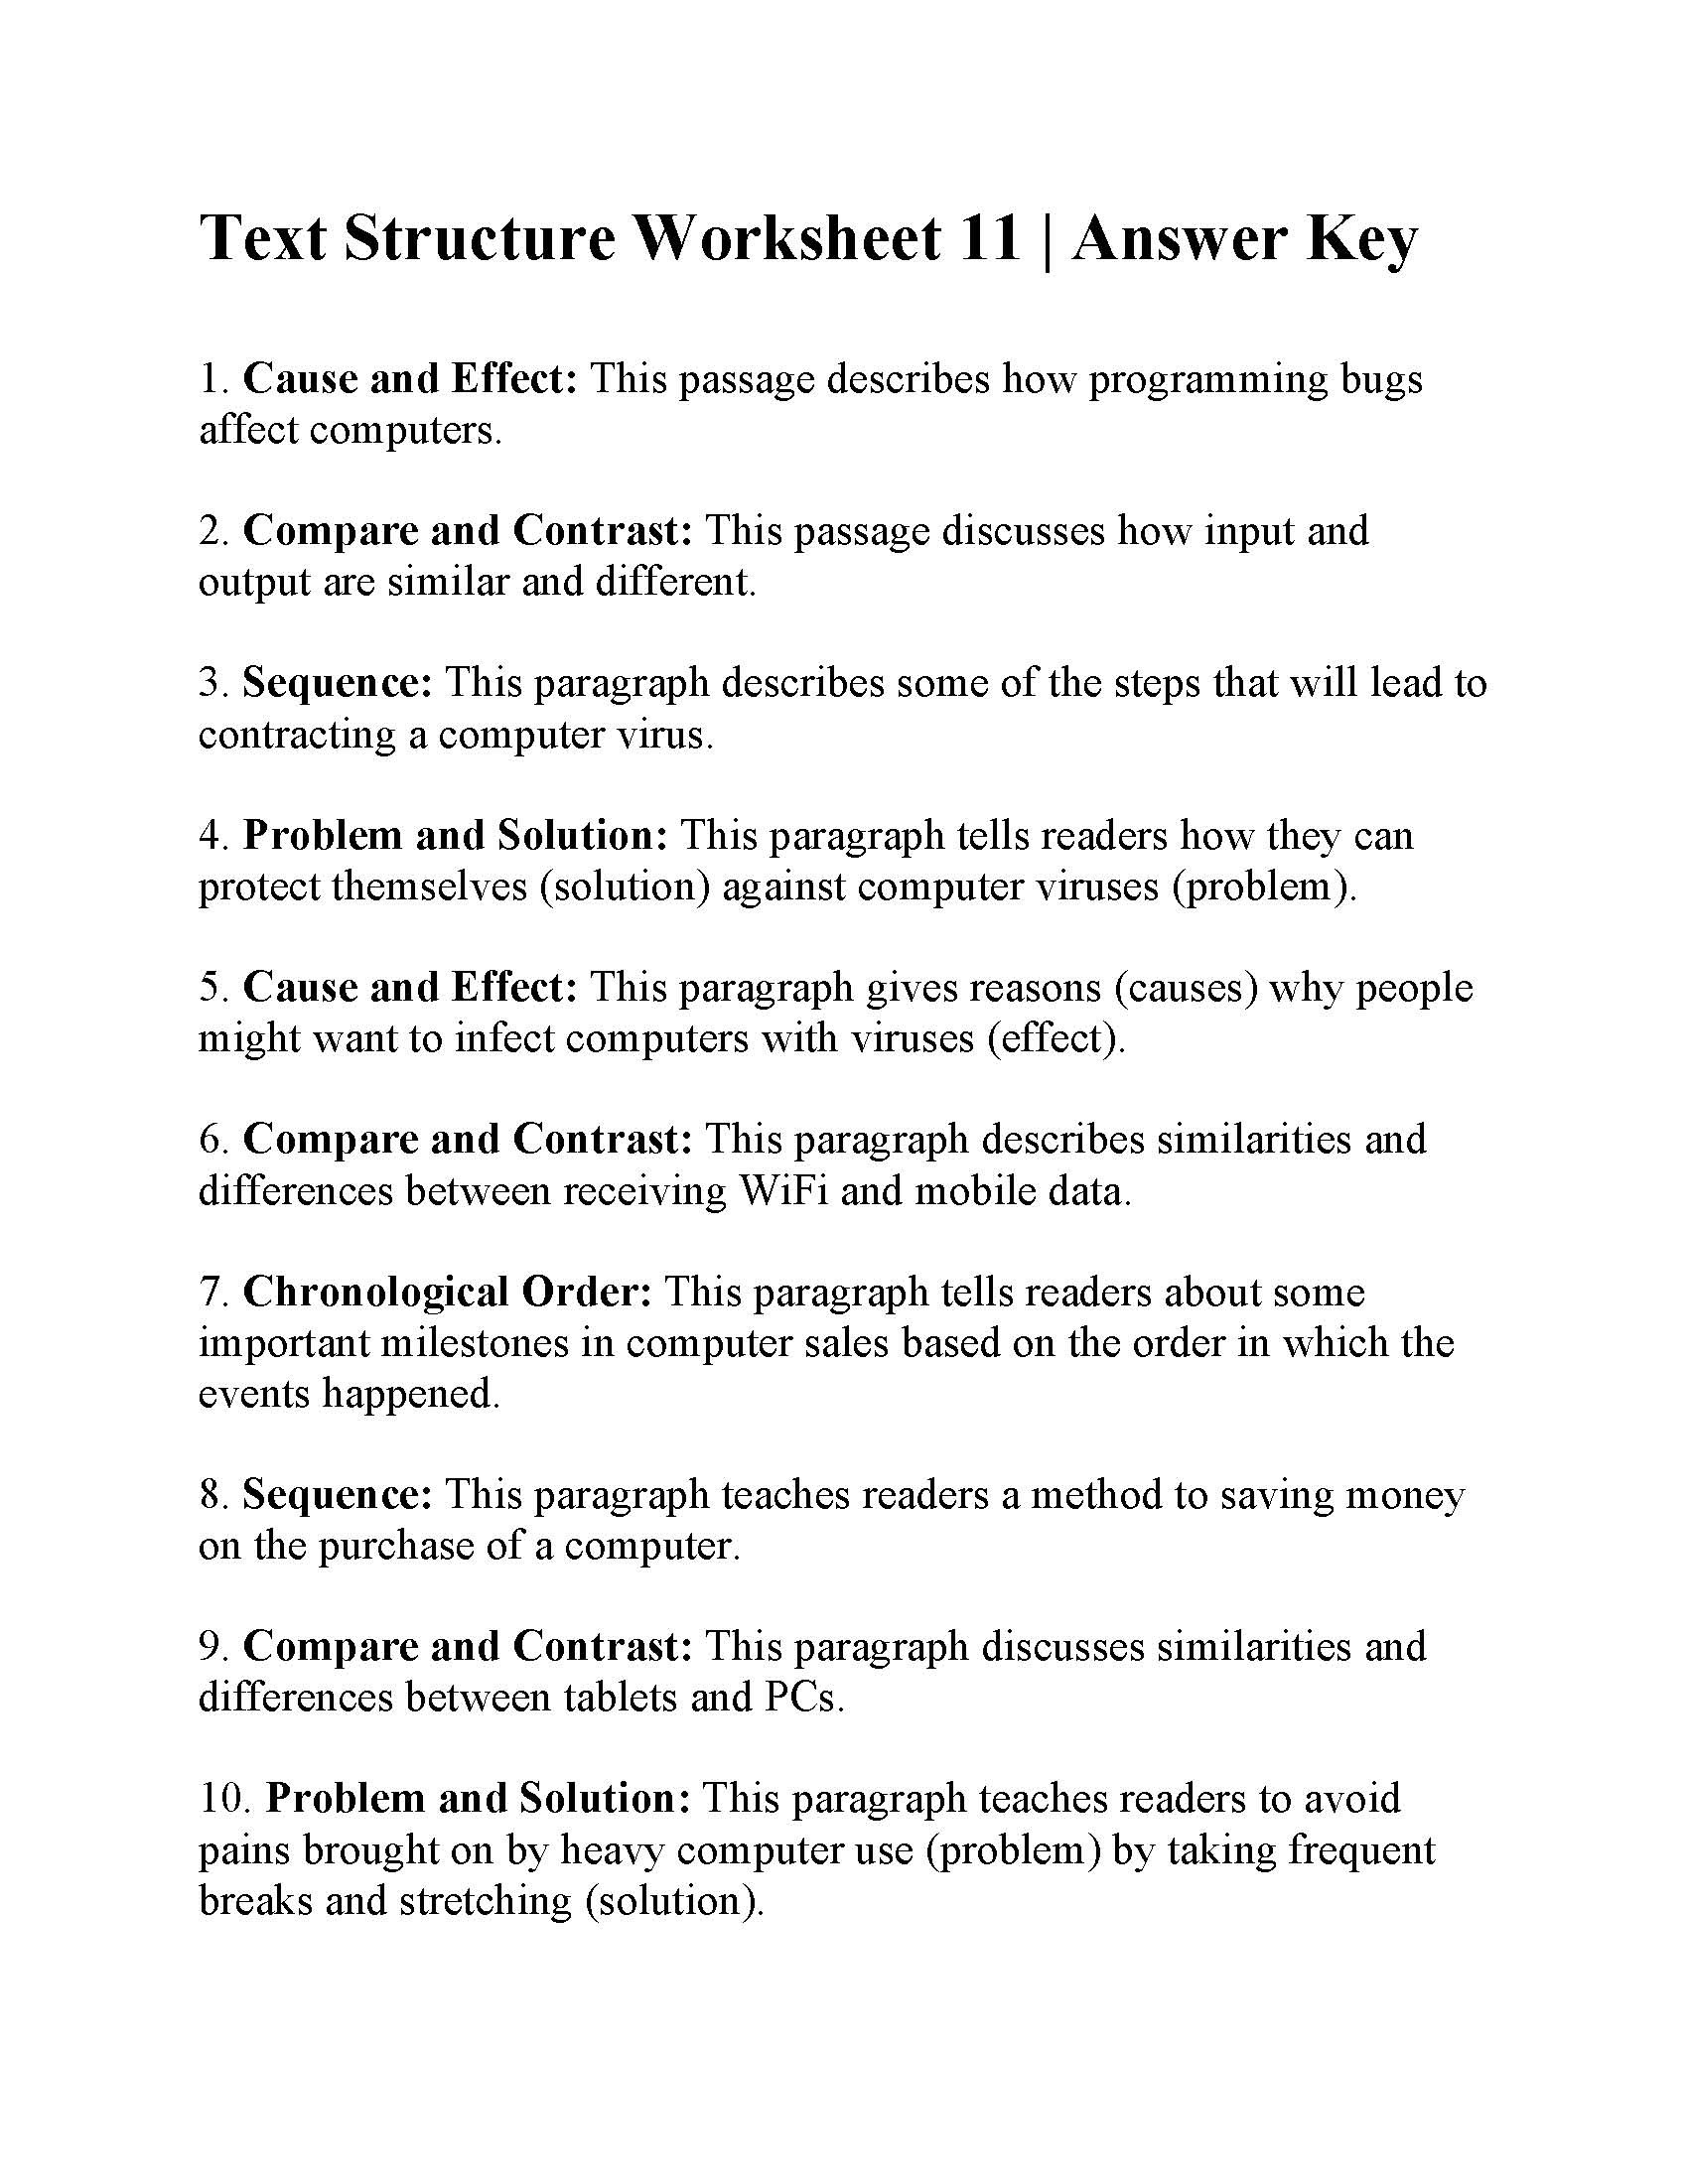 Text Structure Worksheet Pdf Text Structure Worksheet 11